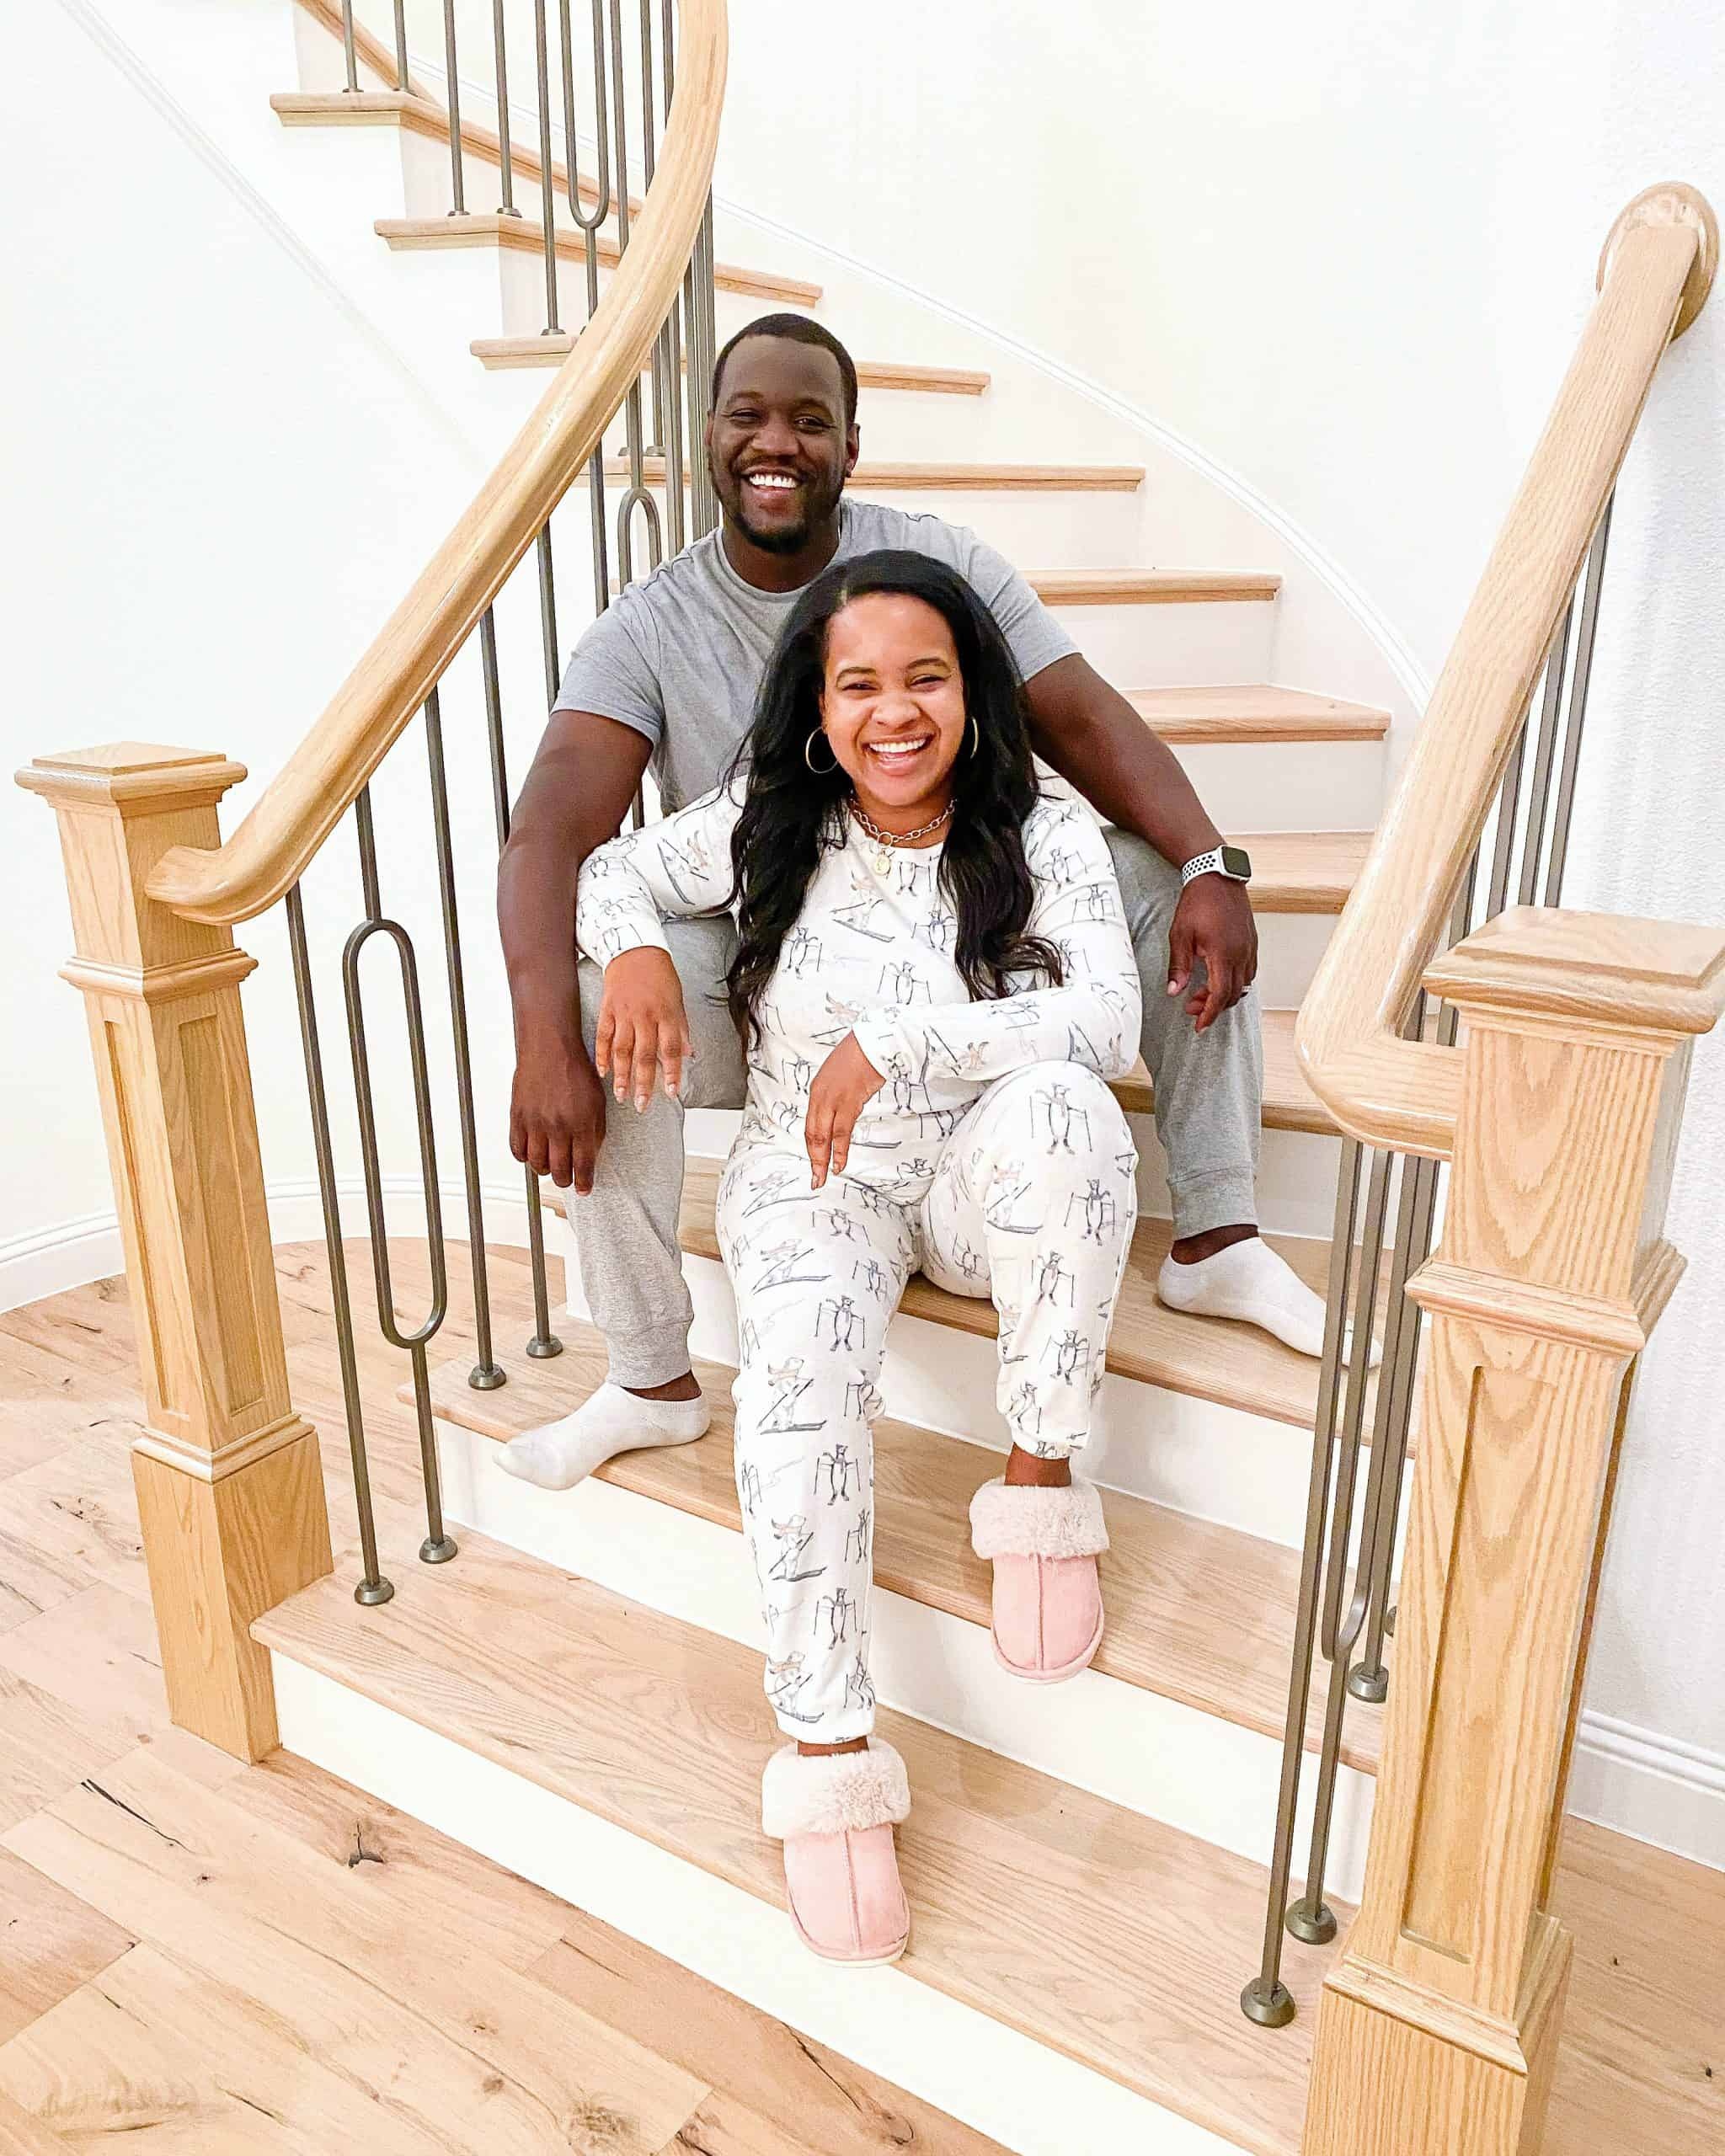 Cozy Gifts by popular Dallas life and style blog, Glamorous Versatility: image of a woman wearing a Nordstrom BP. Print Comfy Pajamas set with a pair of pink UGG slippers and sitting on the stairs in front of her husband who is wearing a grey pajama set.